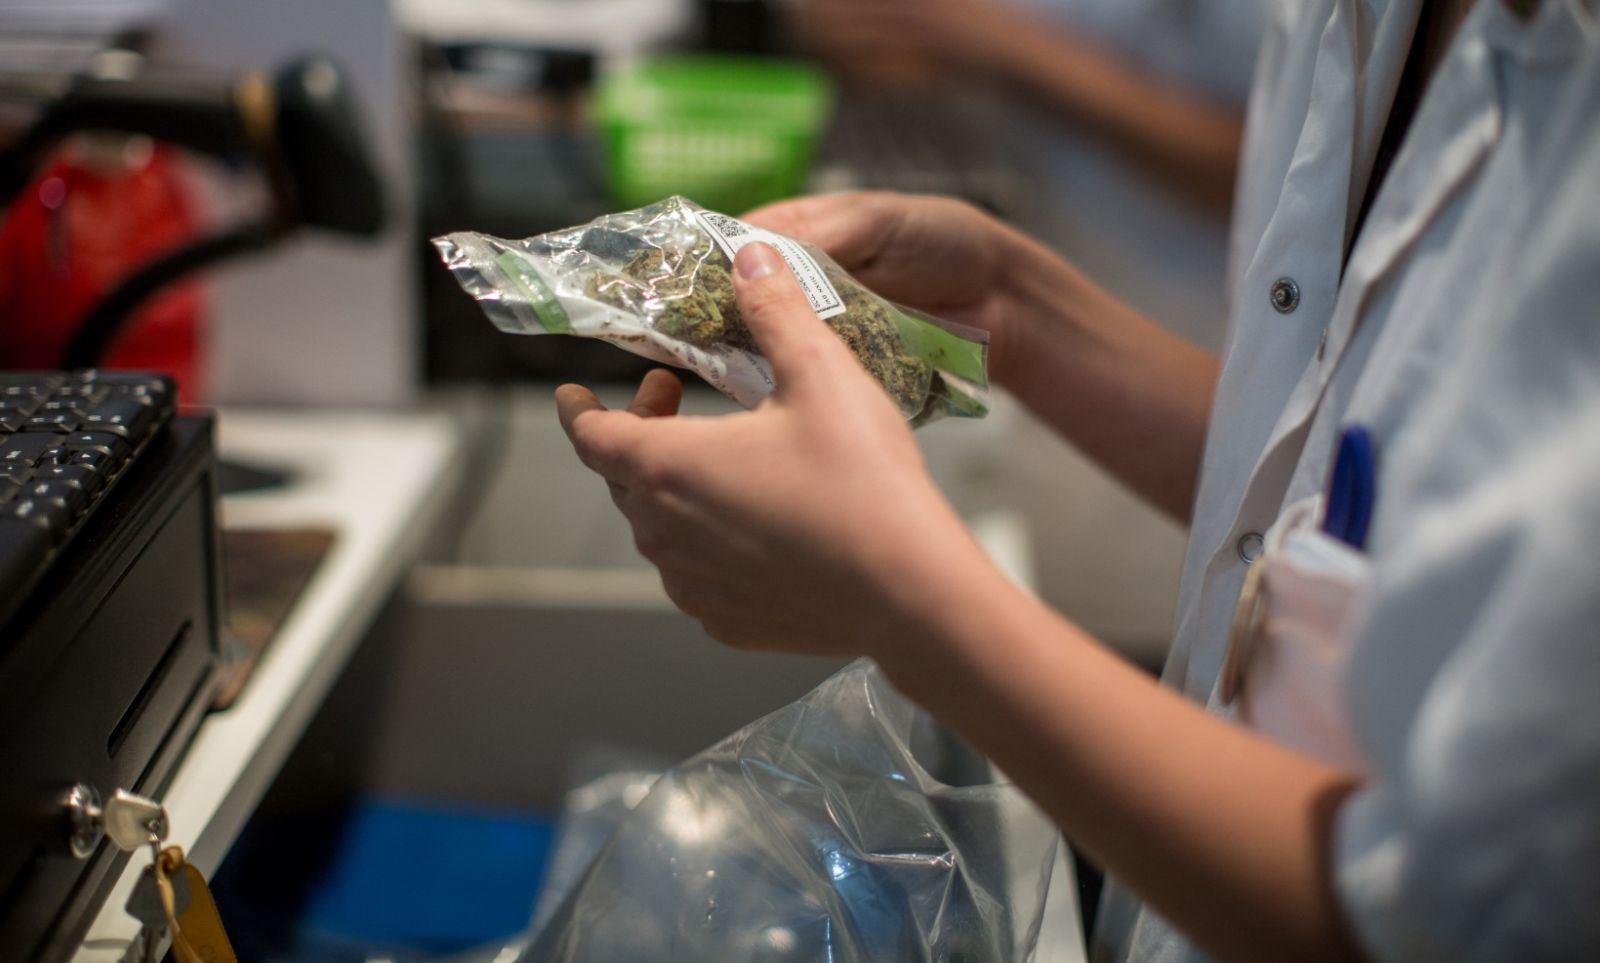 Marijuana Addiction: Just One Amongst The Lengthy Effects Of Weed